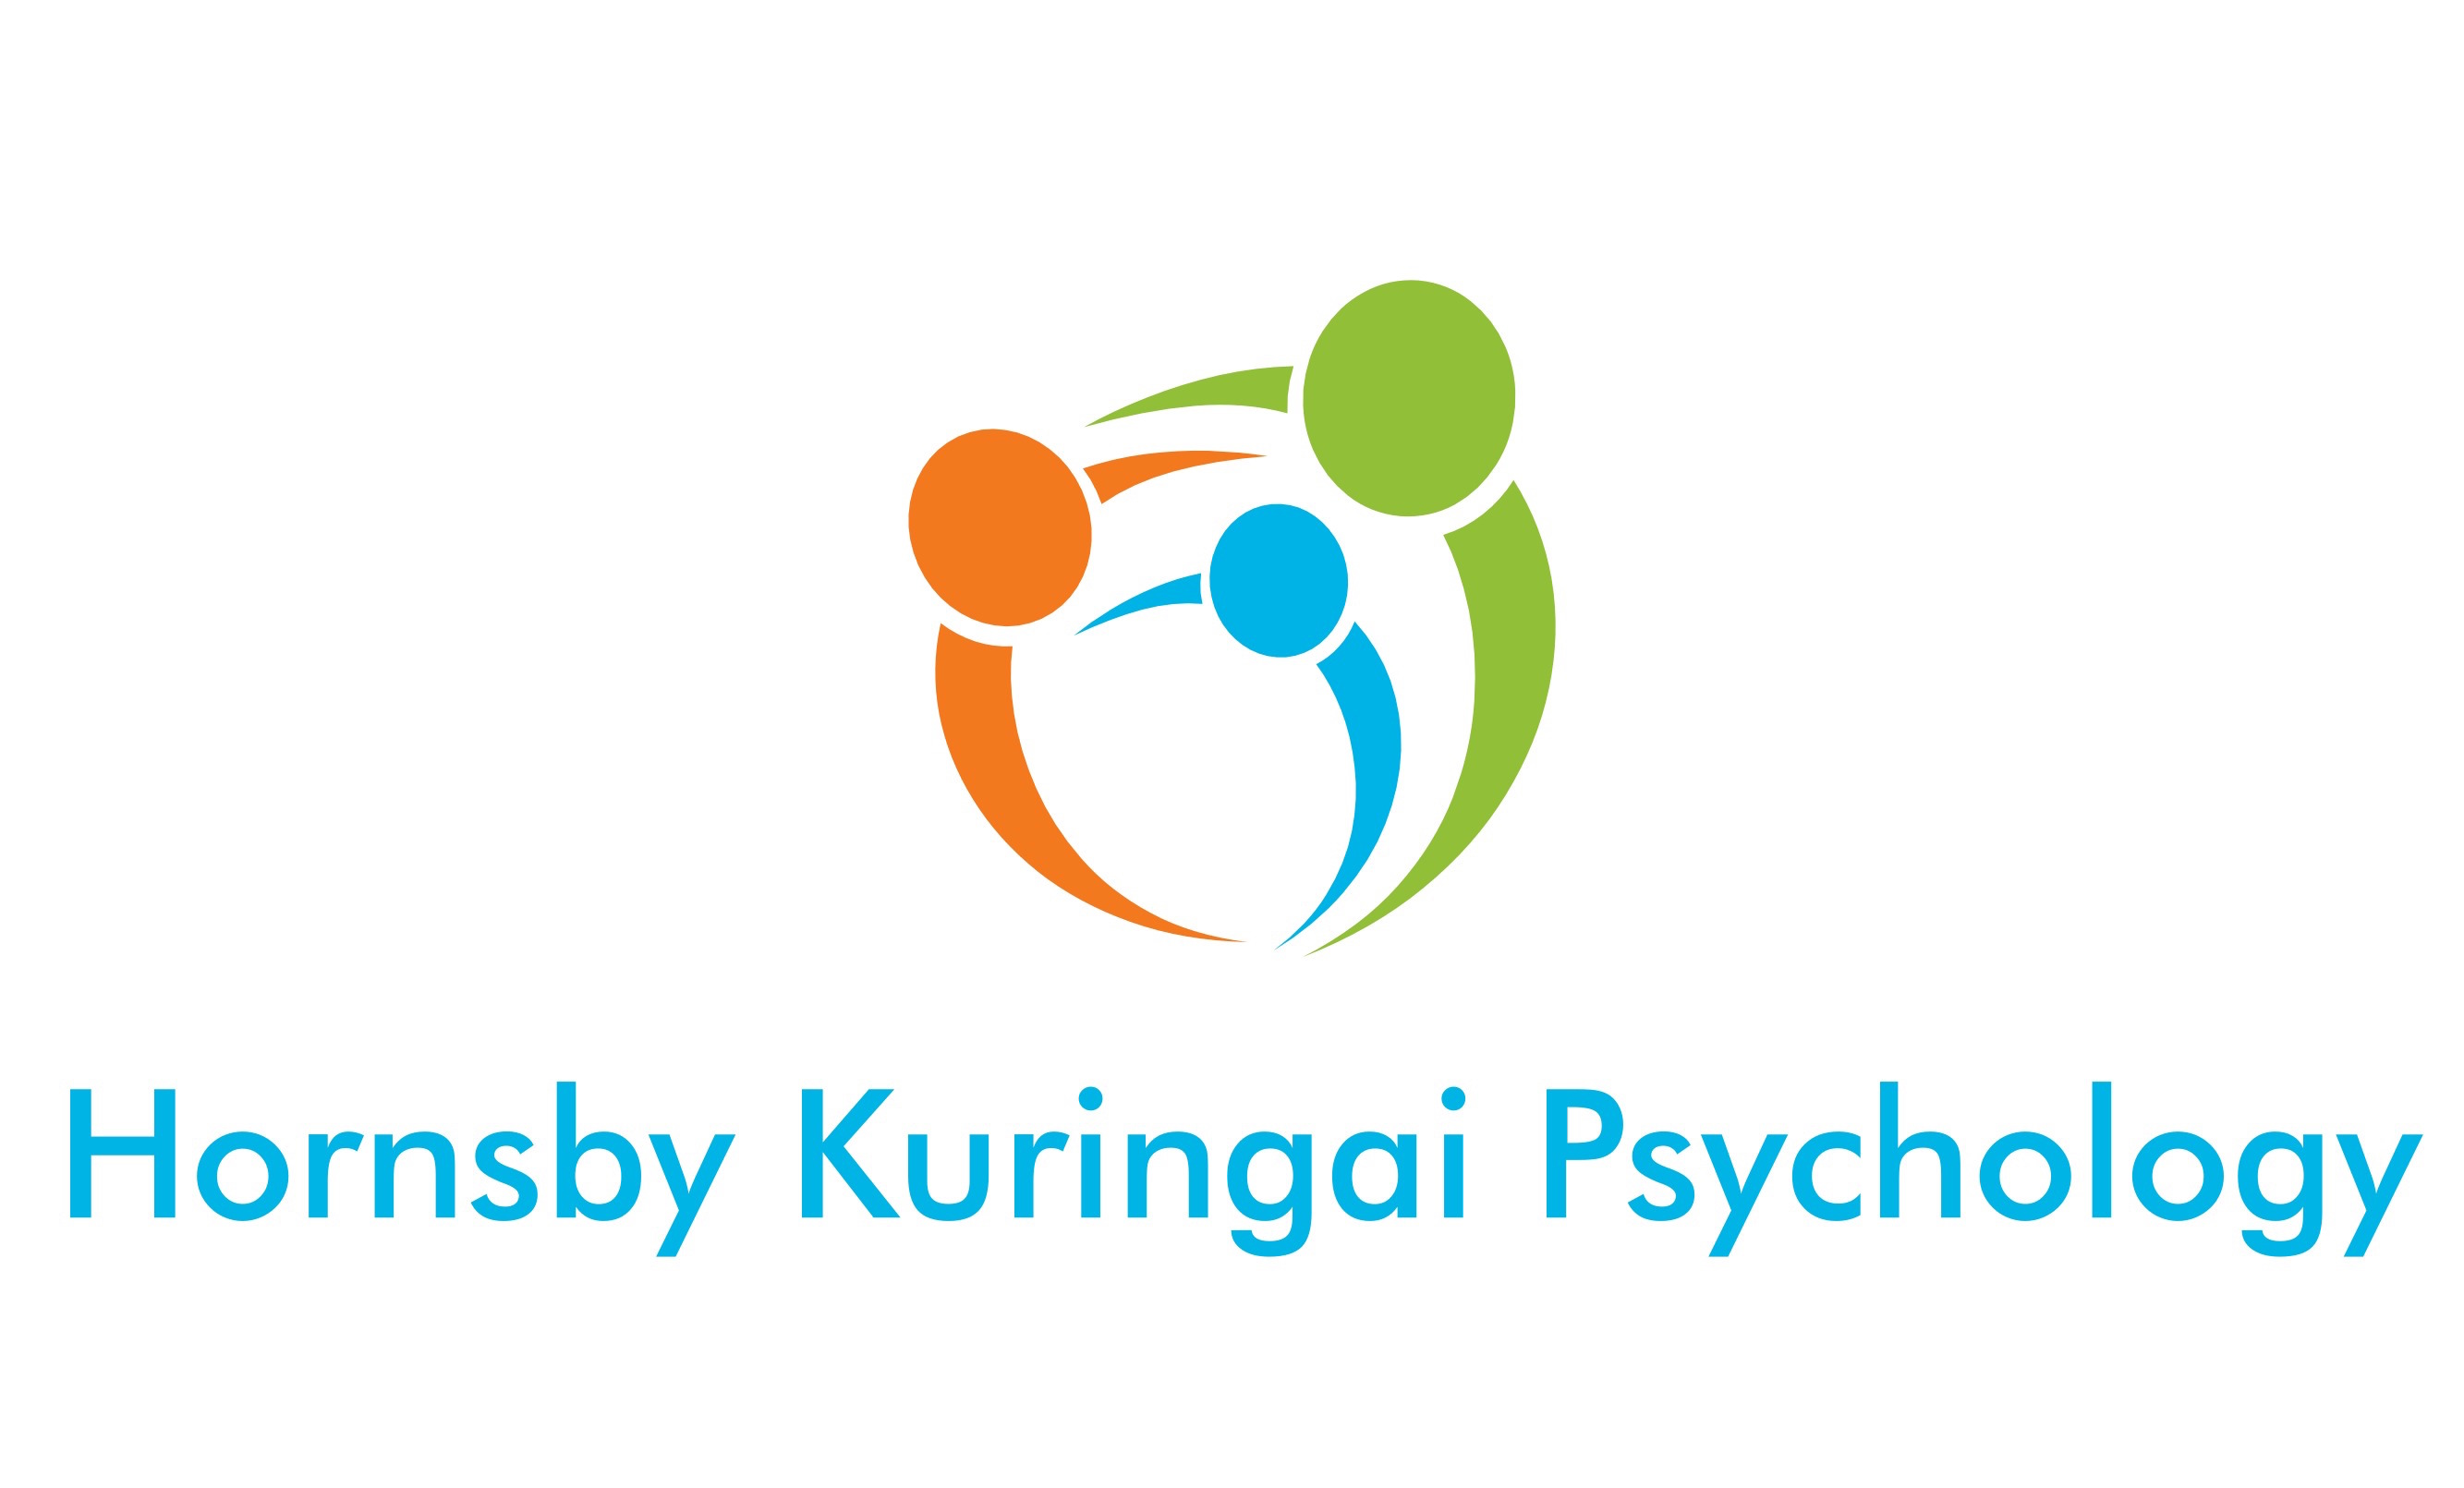 Hornsby Kuringai Psychology